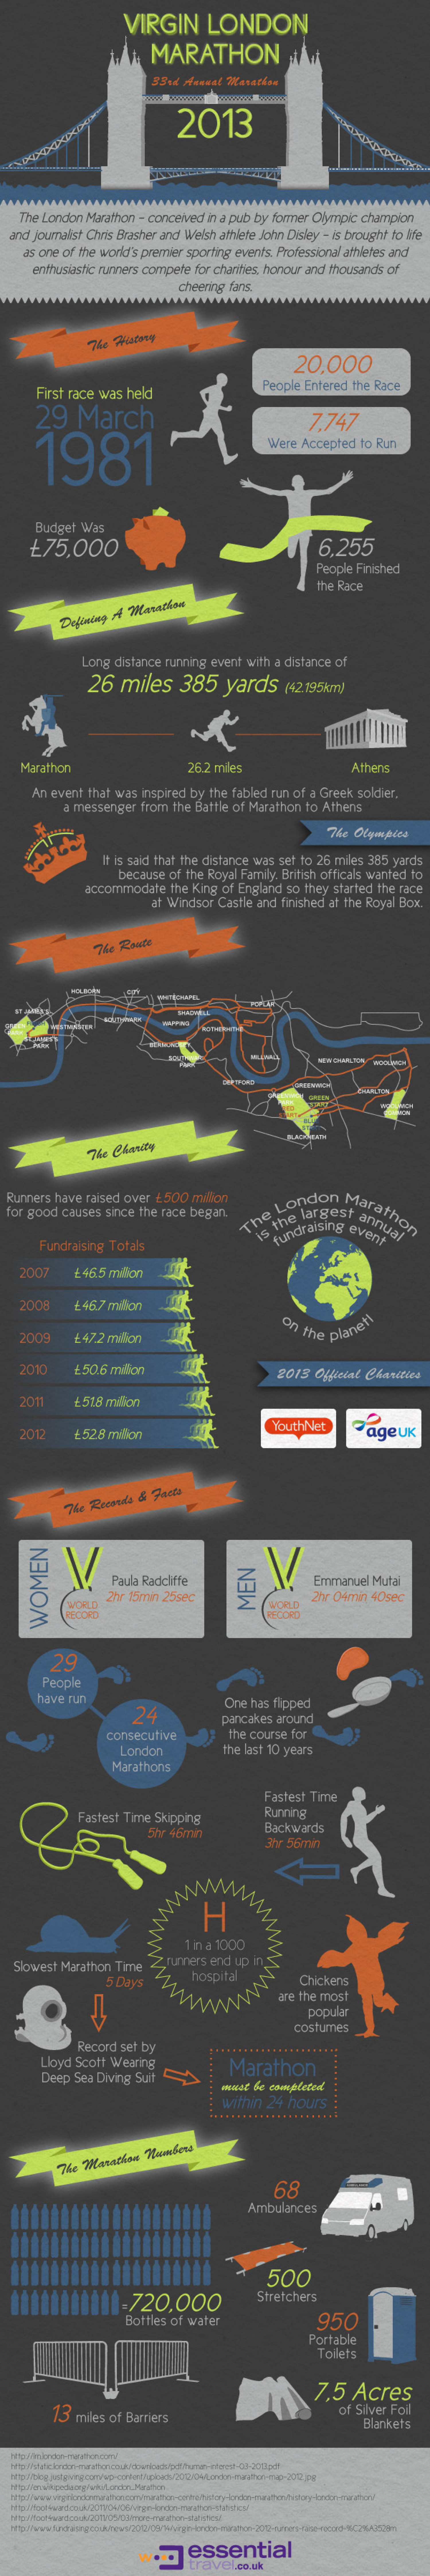 Virgin London Marathon 2013 Infographic